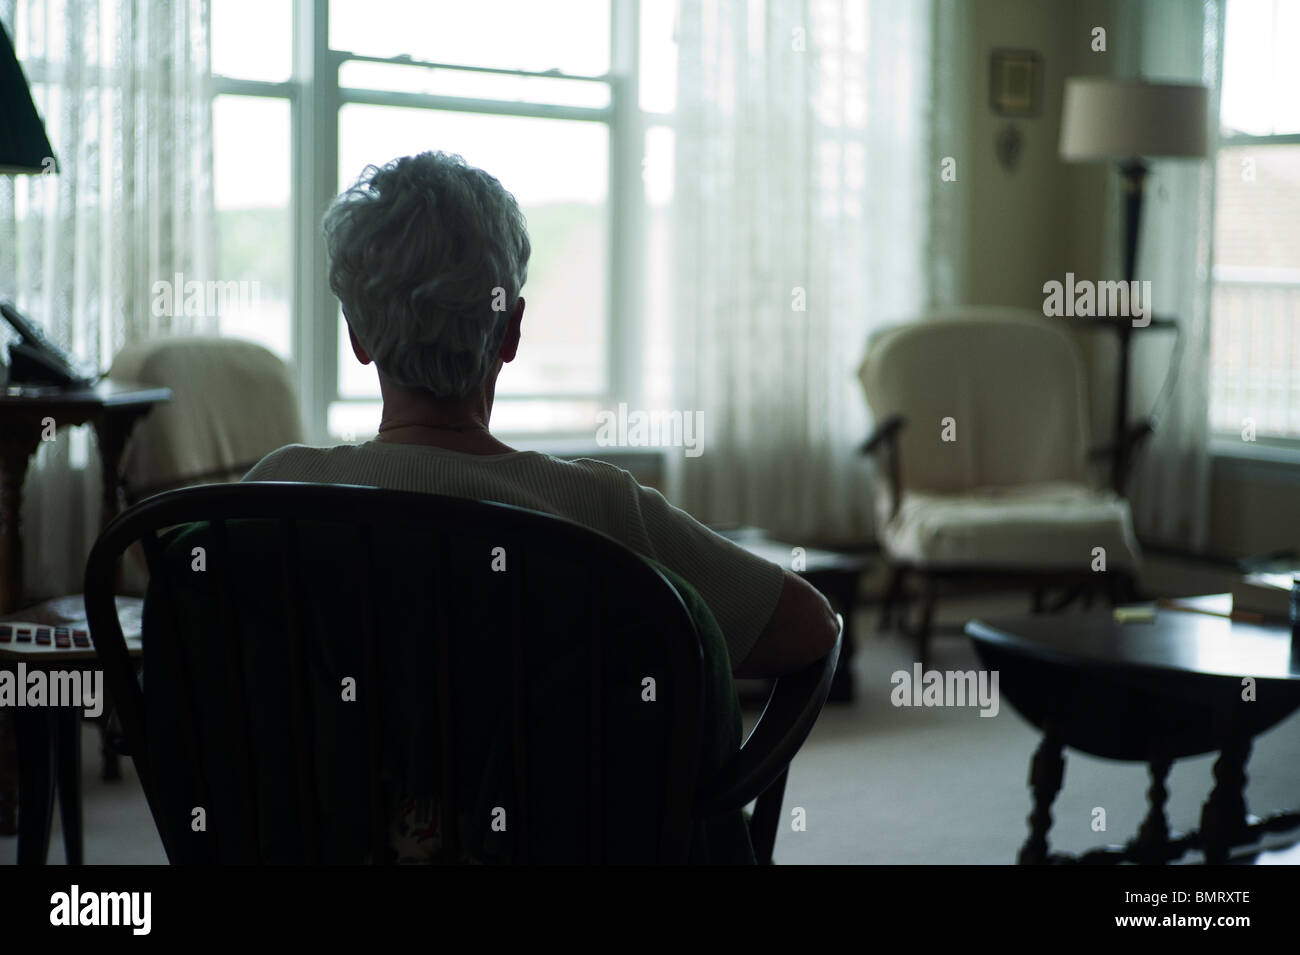 Old woman from behind as she sits looking out window. - Stock Image